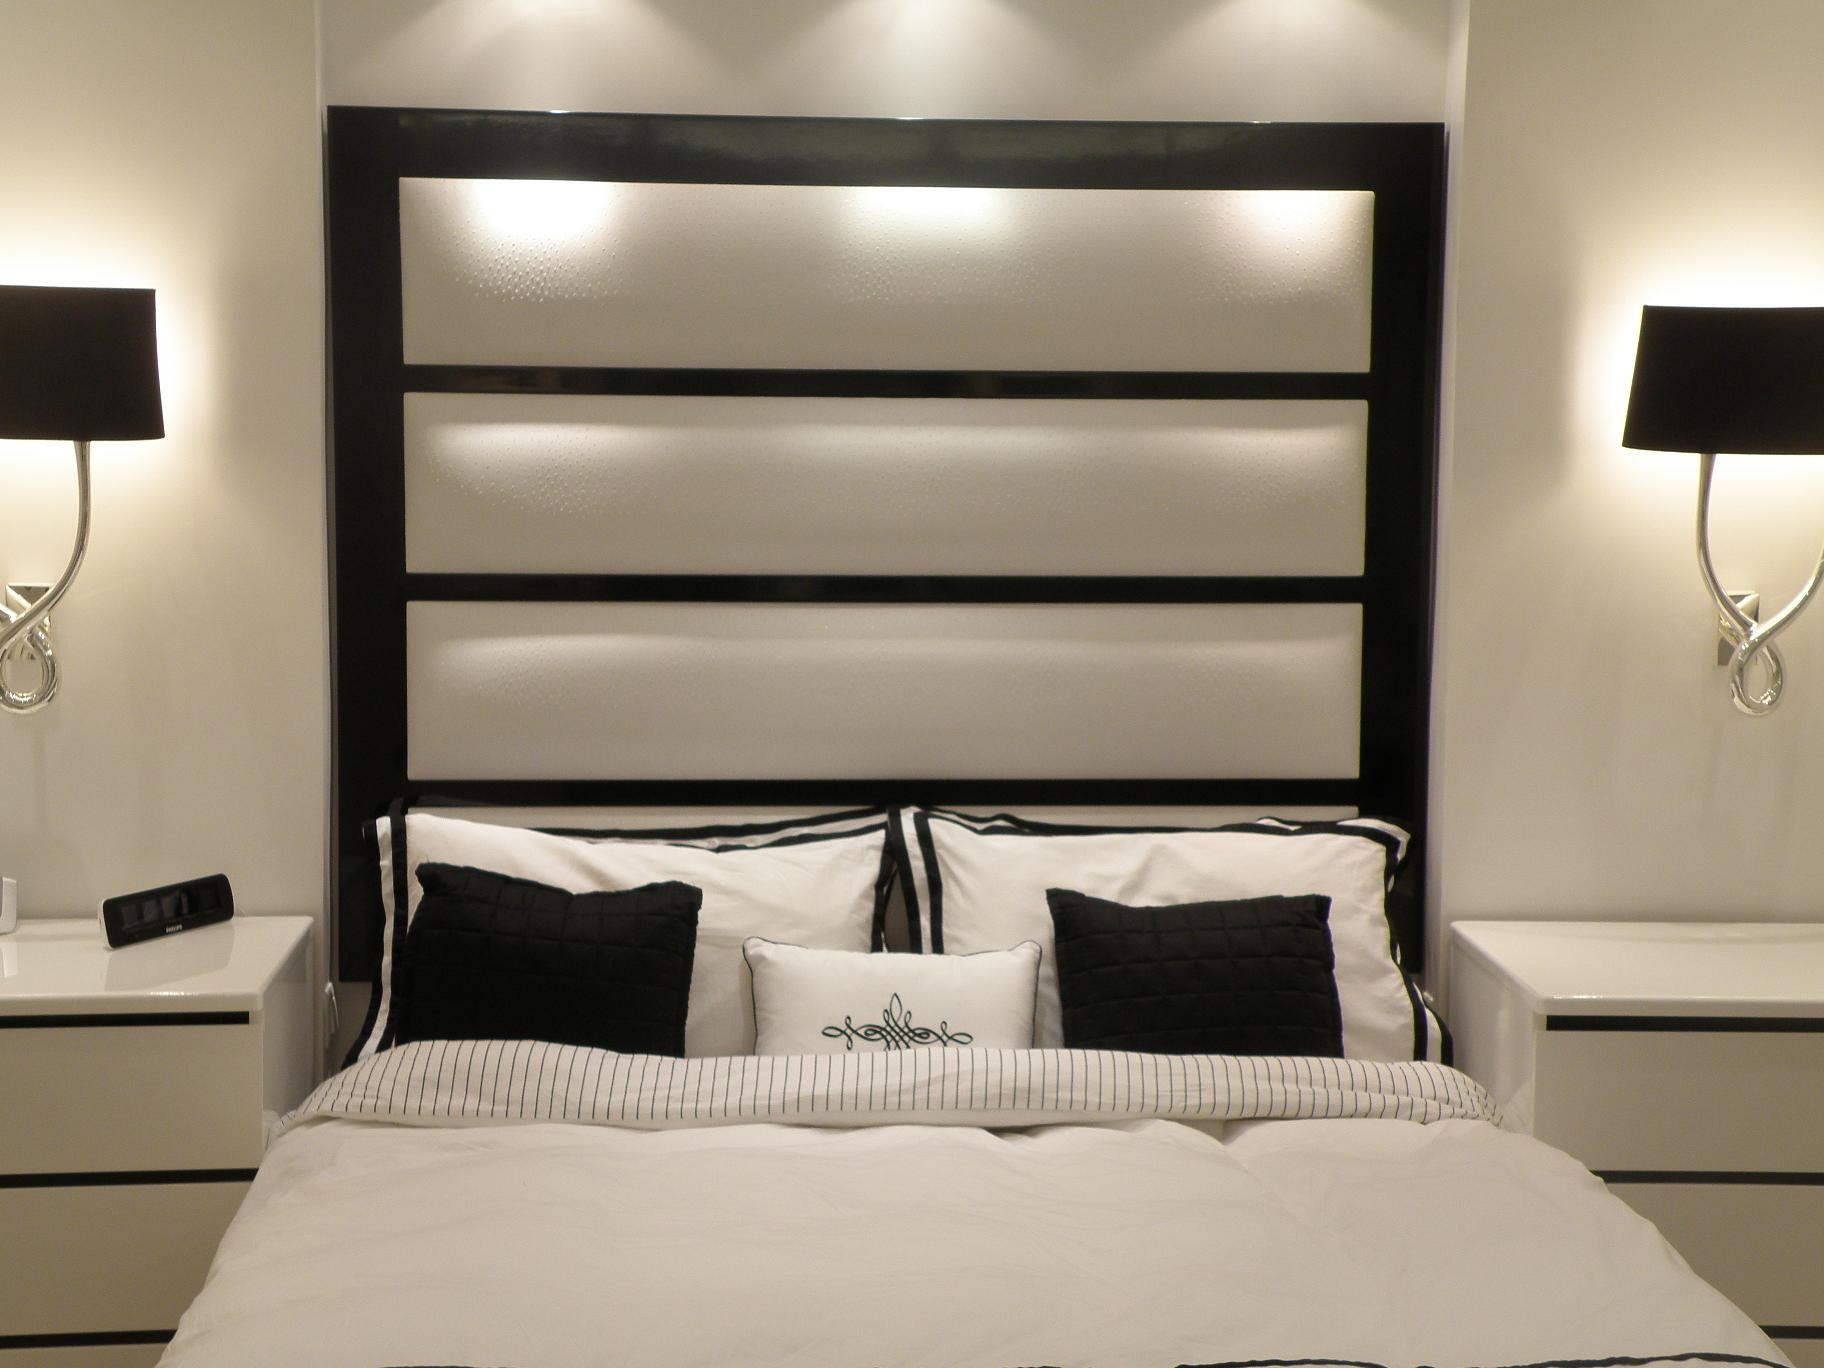 Stylish Headboard Ideas Cool Designs For Your Bedroom Design Pics